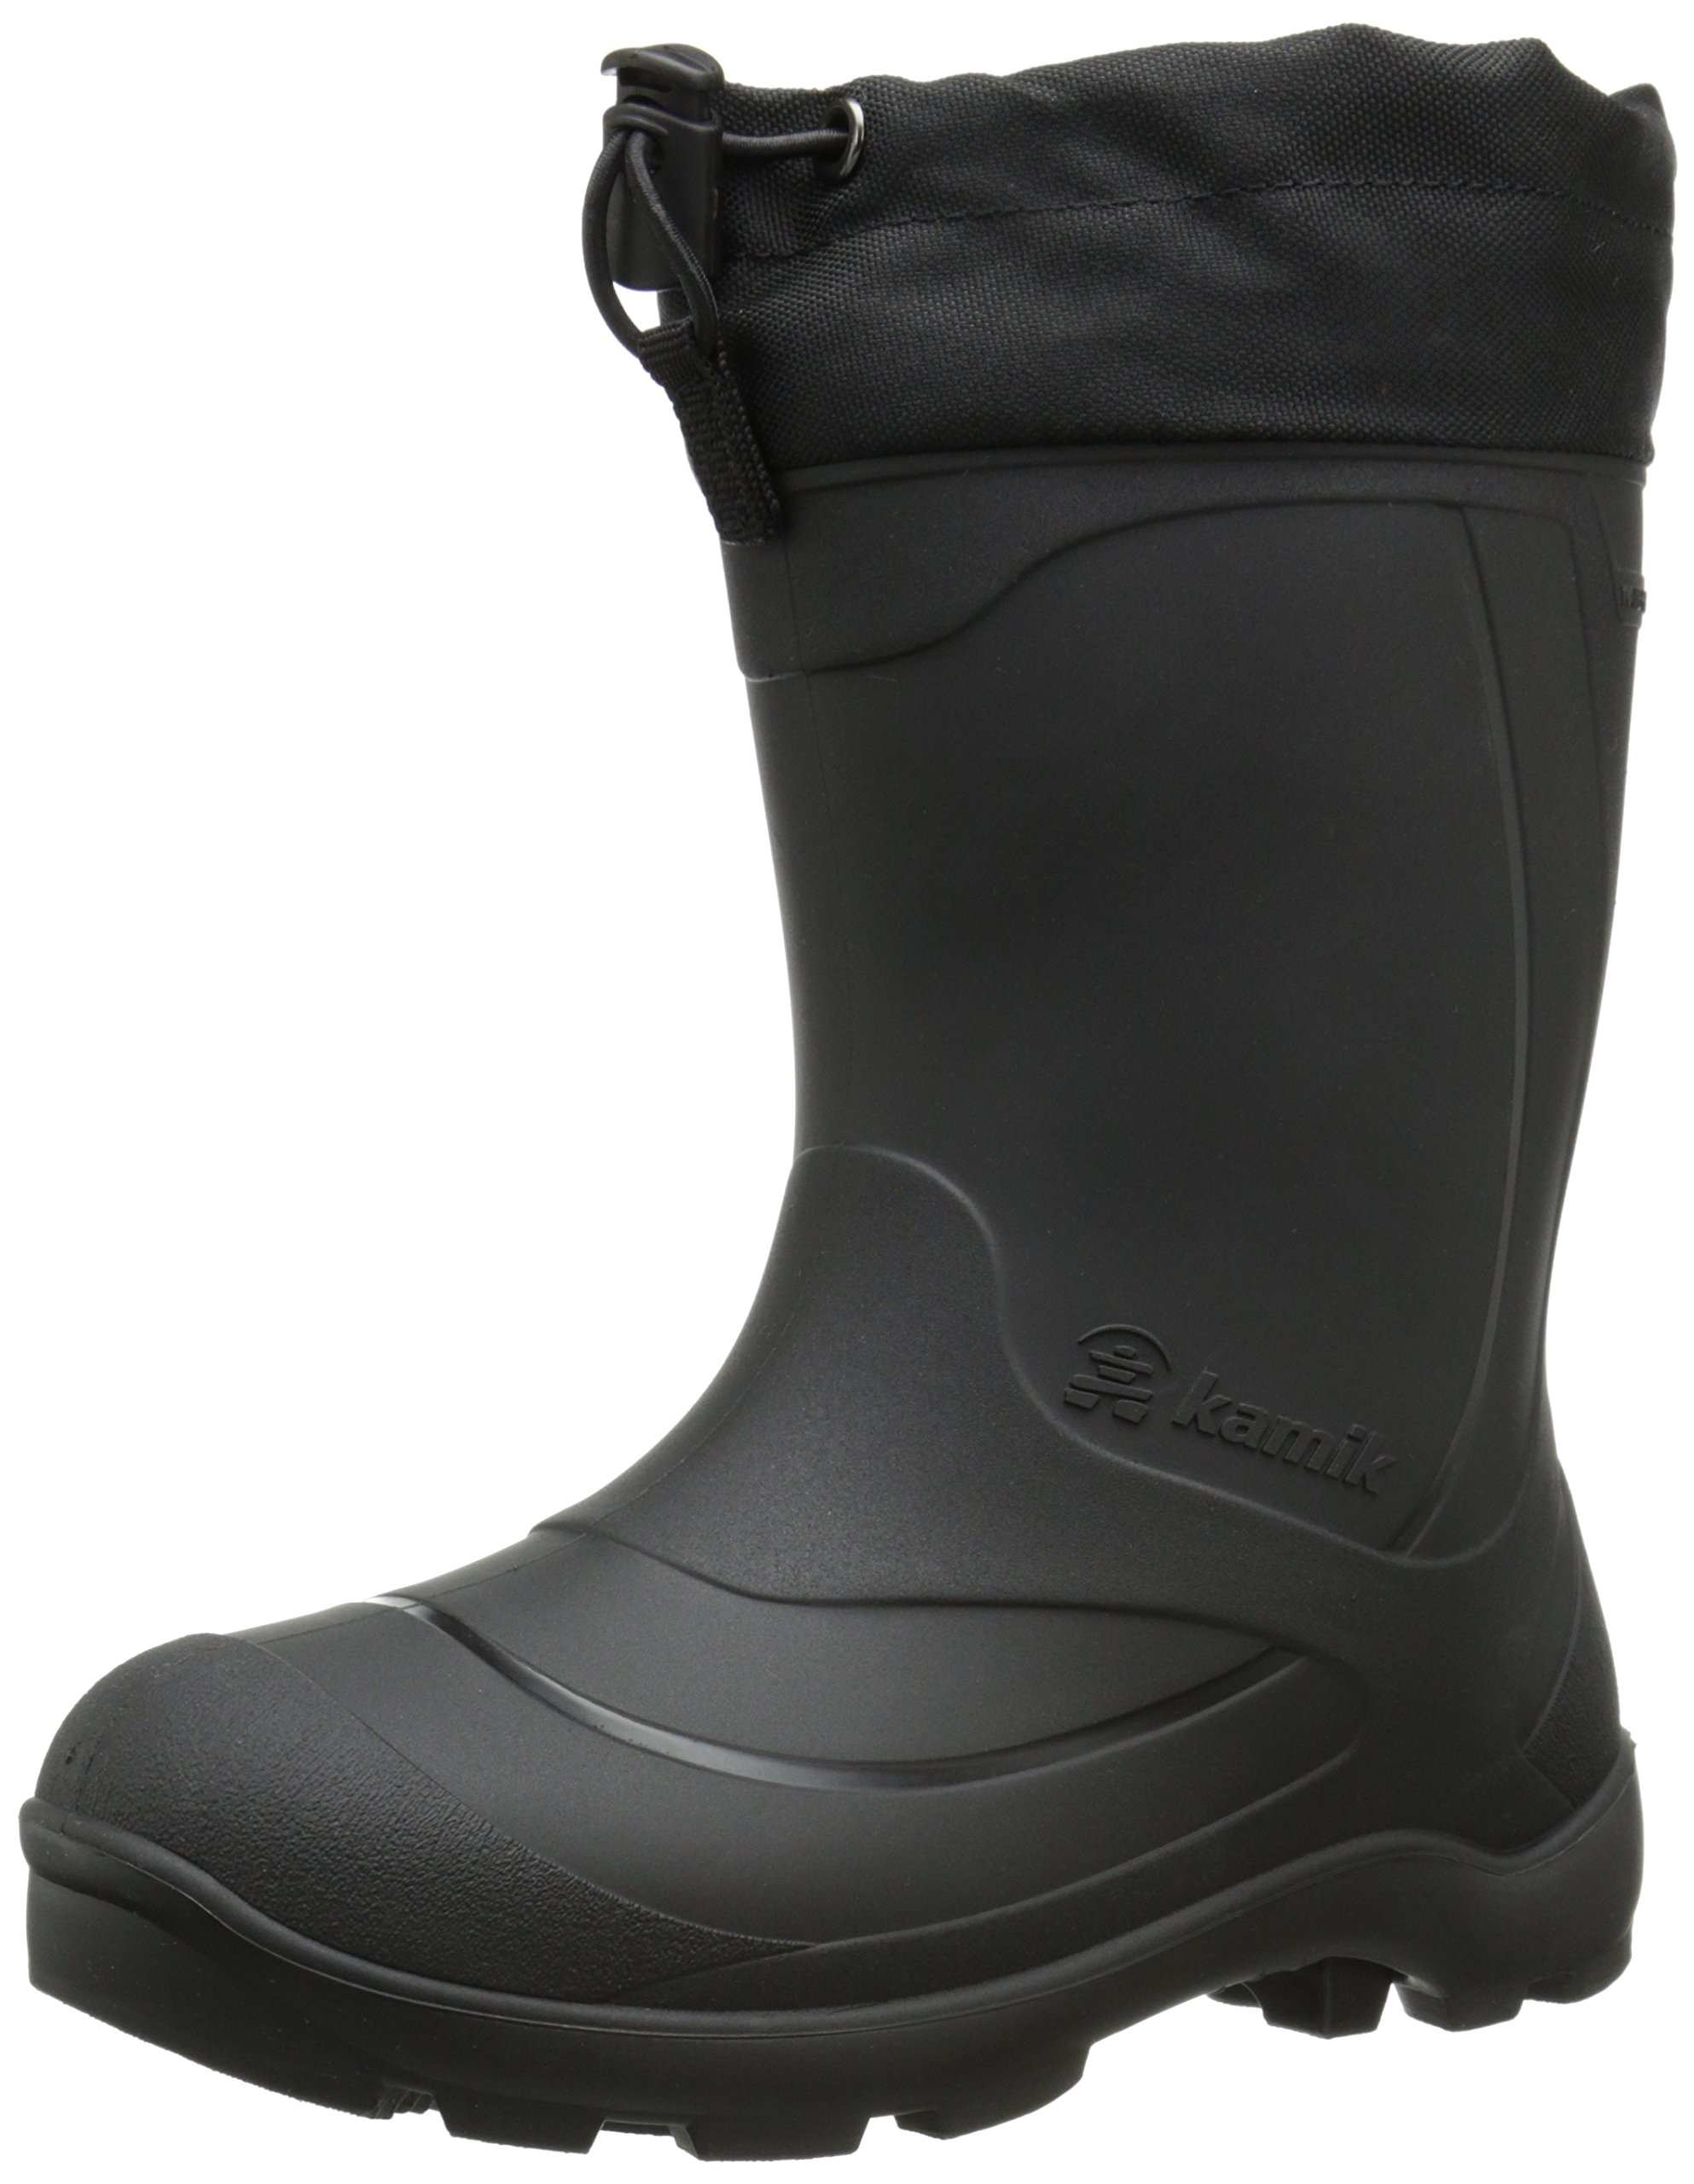 3f205801a26 Kamik Footwear Kids Snobuster1 Insulated Snow Boot (Toddler Little Kid Big  Kid)